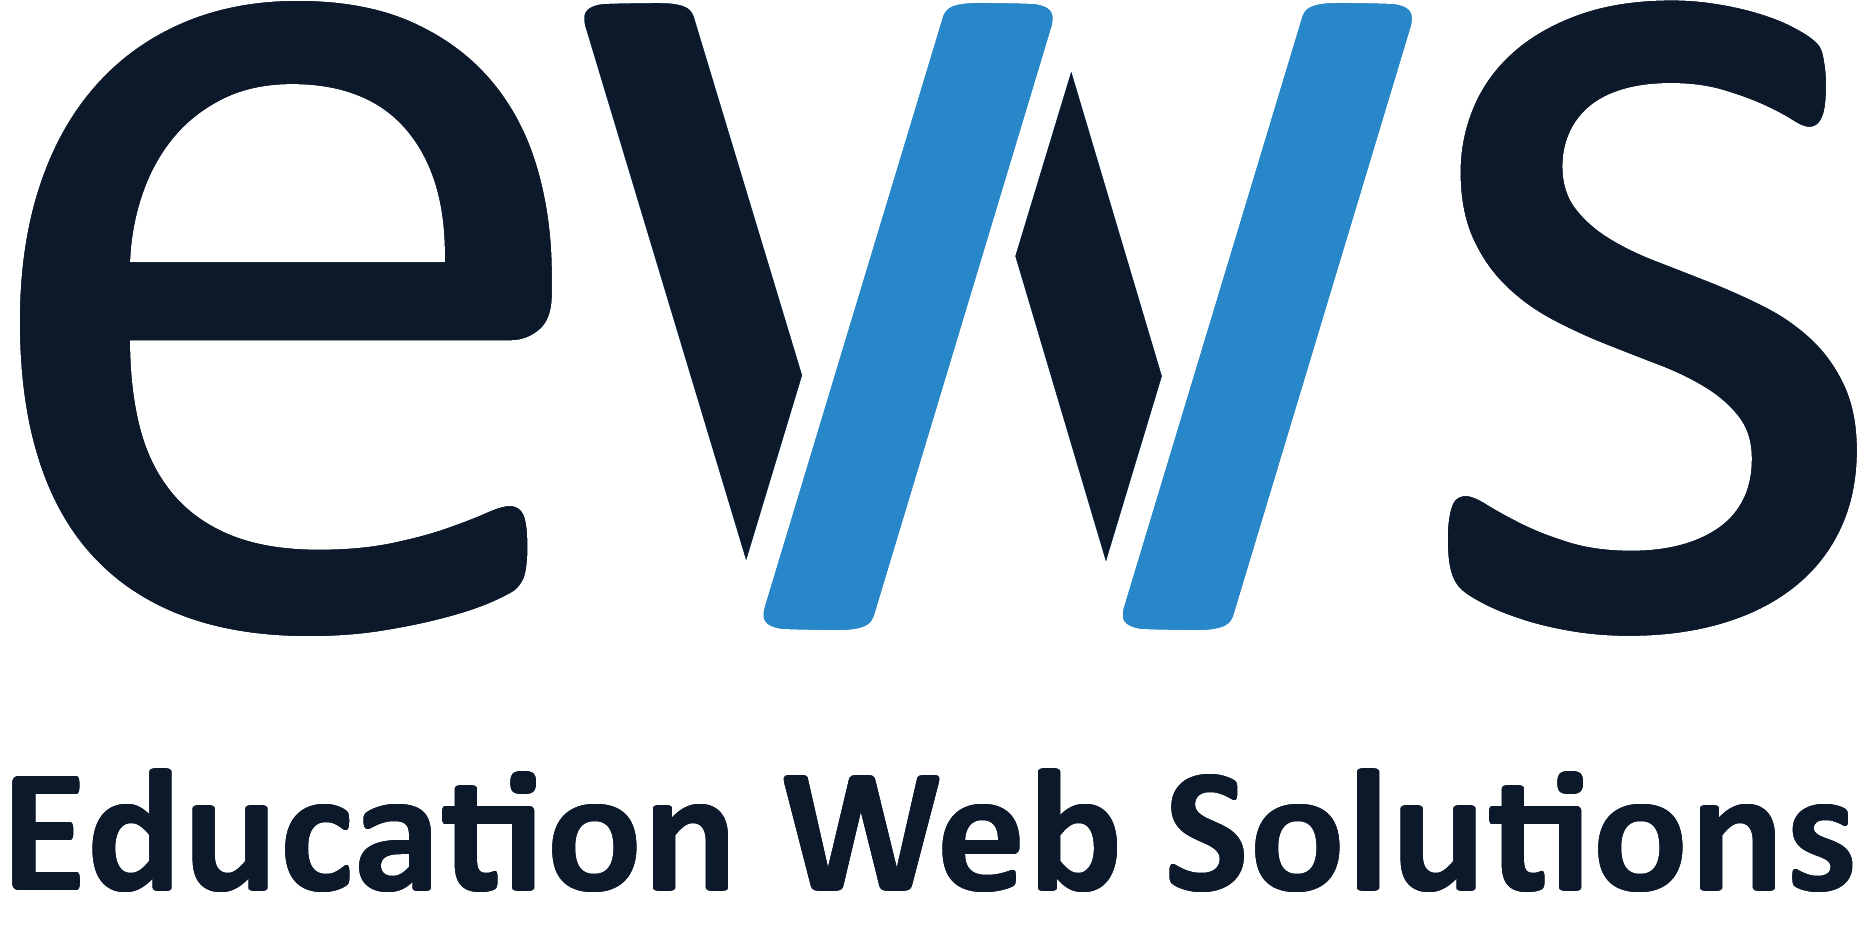 Education Web Solutions logo